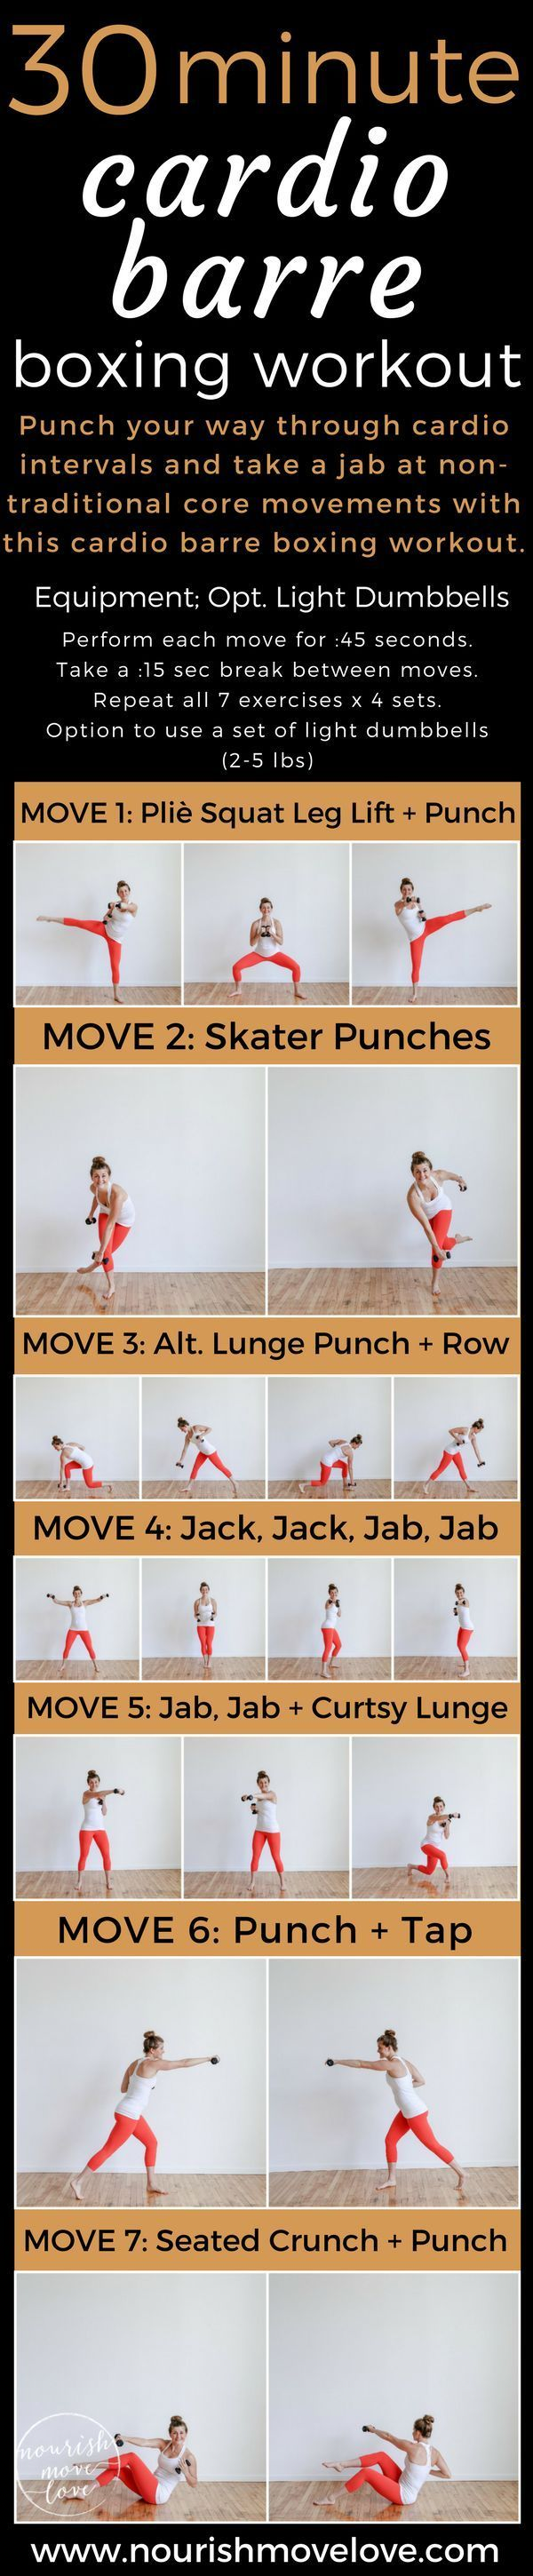 Cardio Barre Boxing Workout – full body workout under 30 minutes. Pair traditional barre/ballet movements and boxing cardio intervals with core movements. Upper body and lower body strength training with total body cardio. Light dumbbells optional; good o